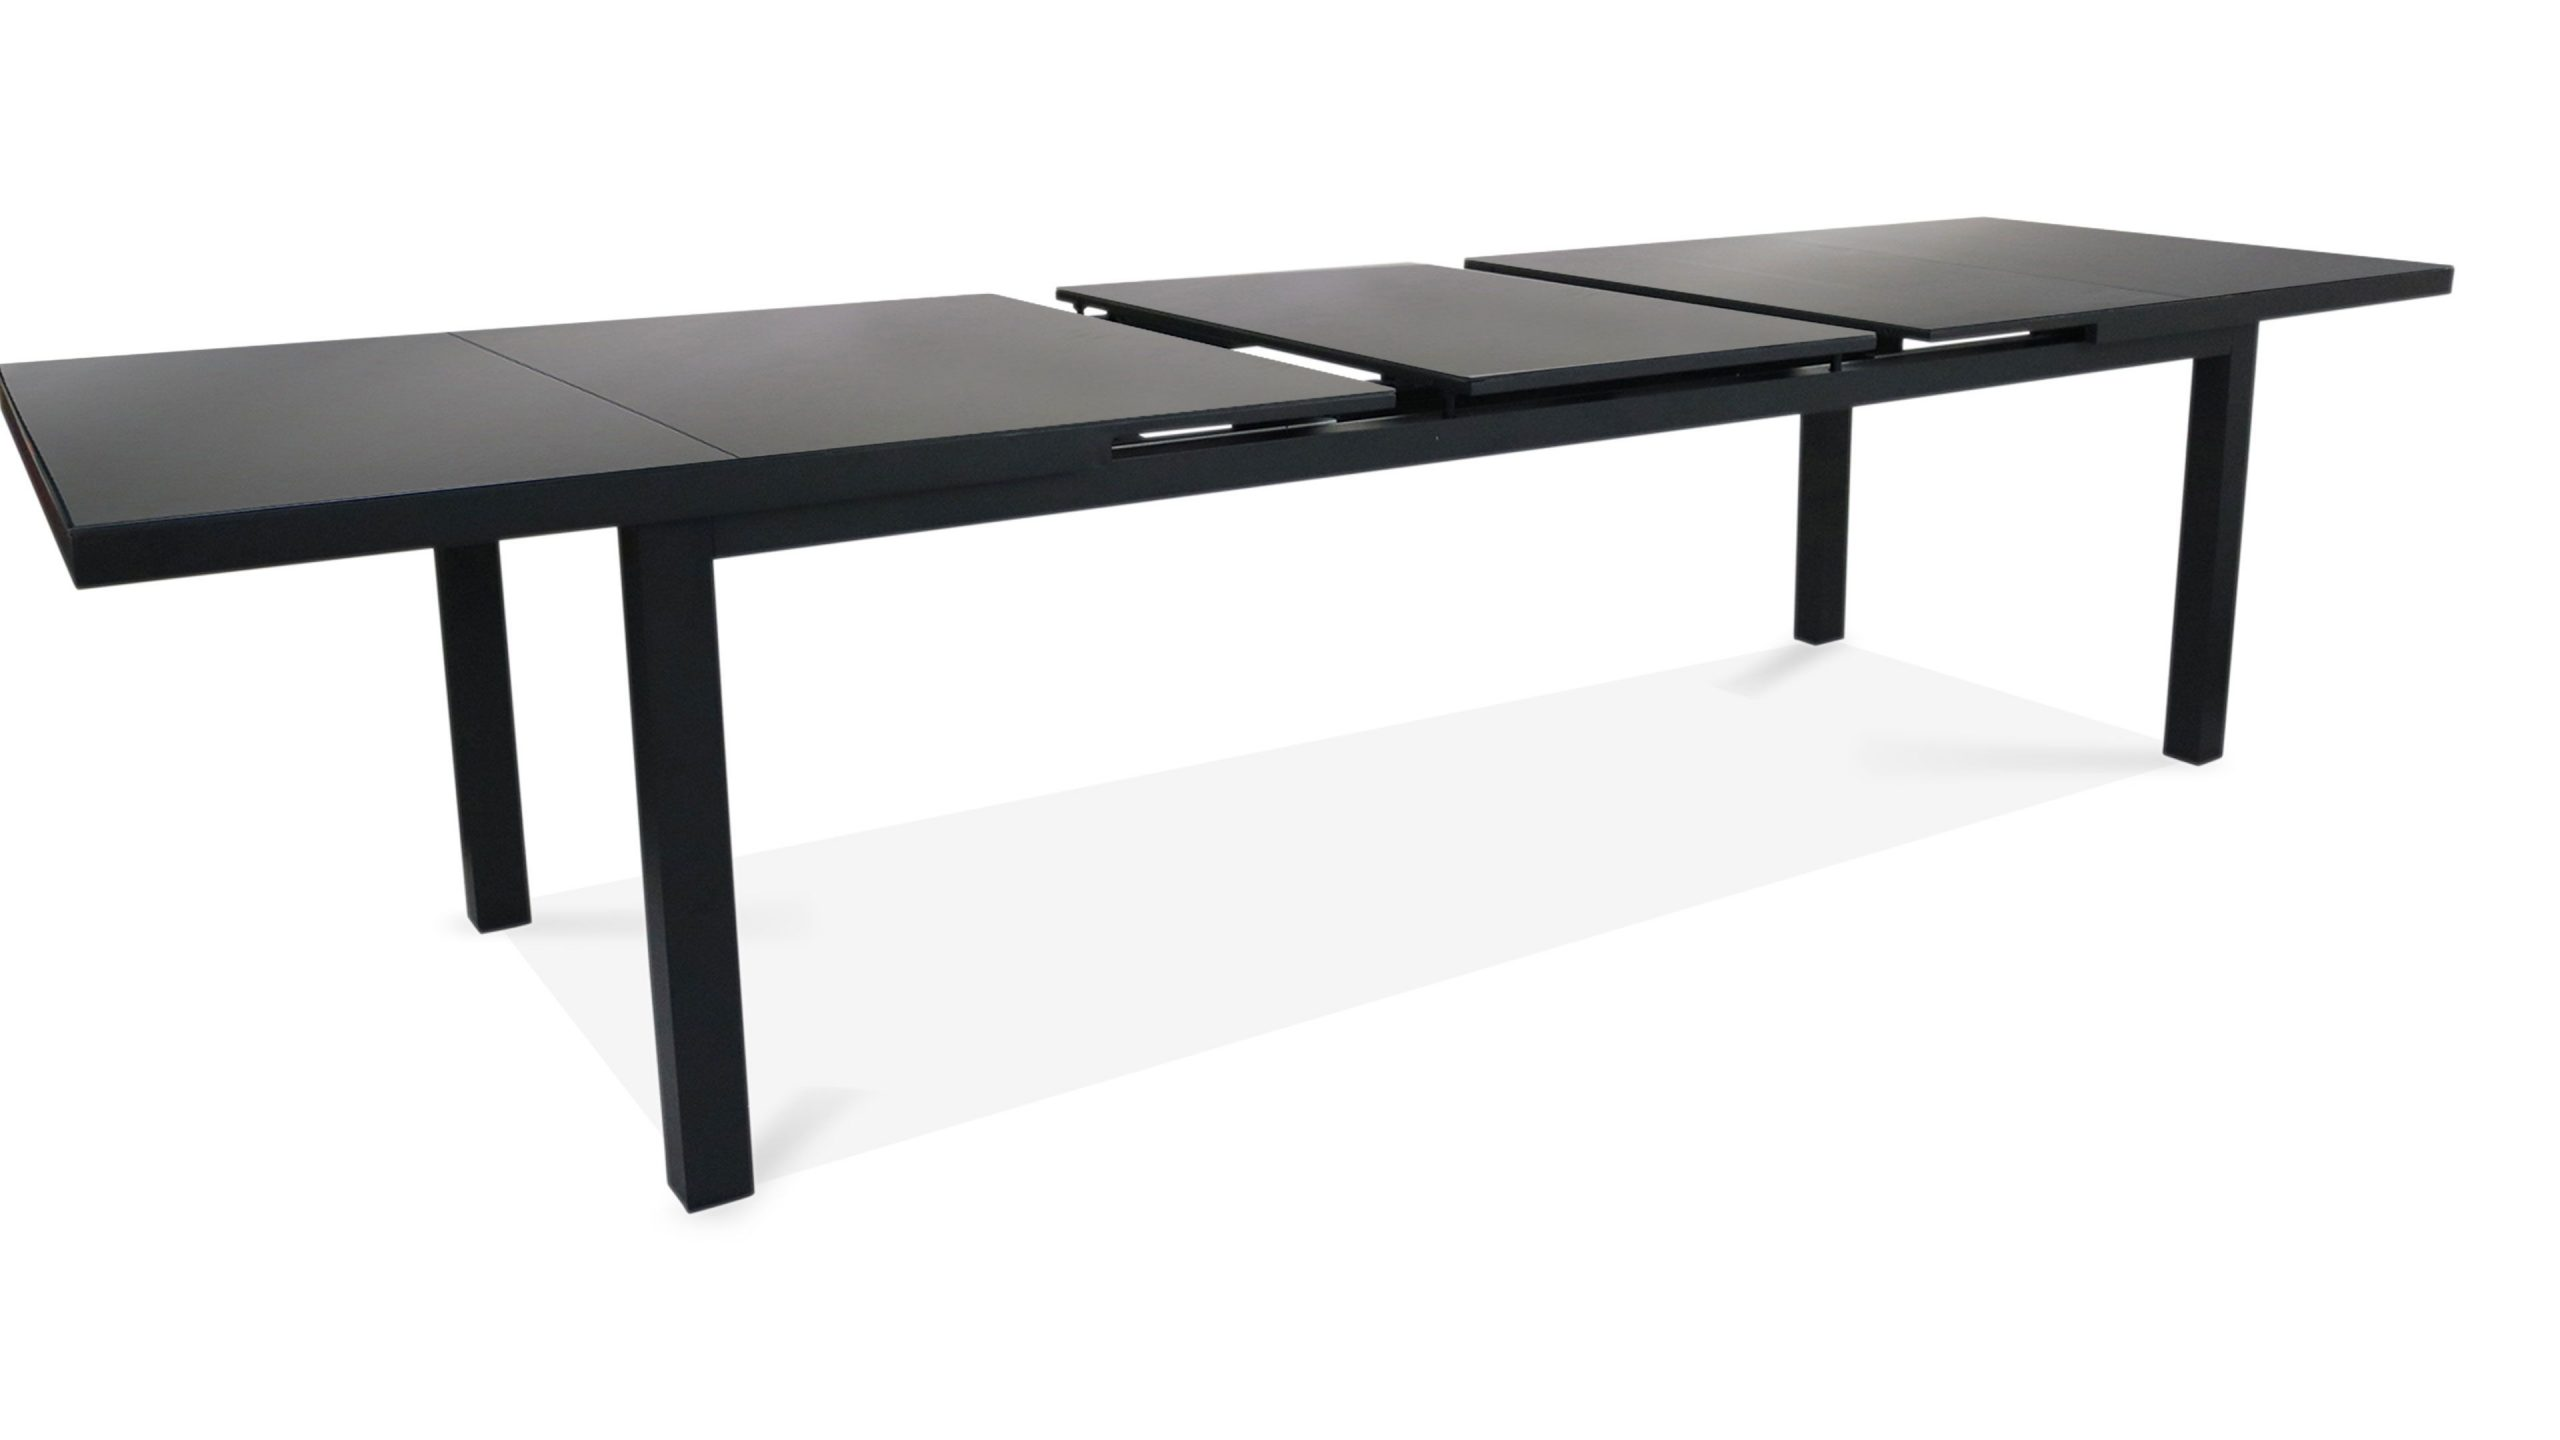 Table Jardin Extensible Rallonge Aluminium 256/320Cm 12 Places dedans Table De Jardin Extensible 320 Cm